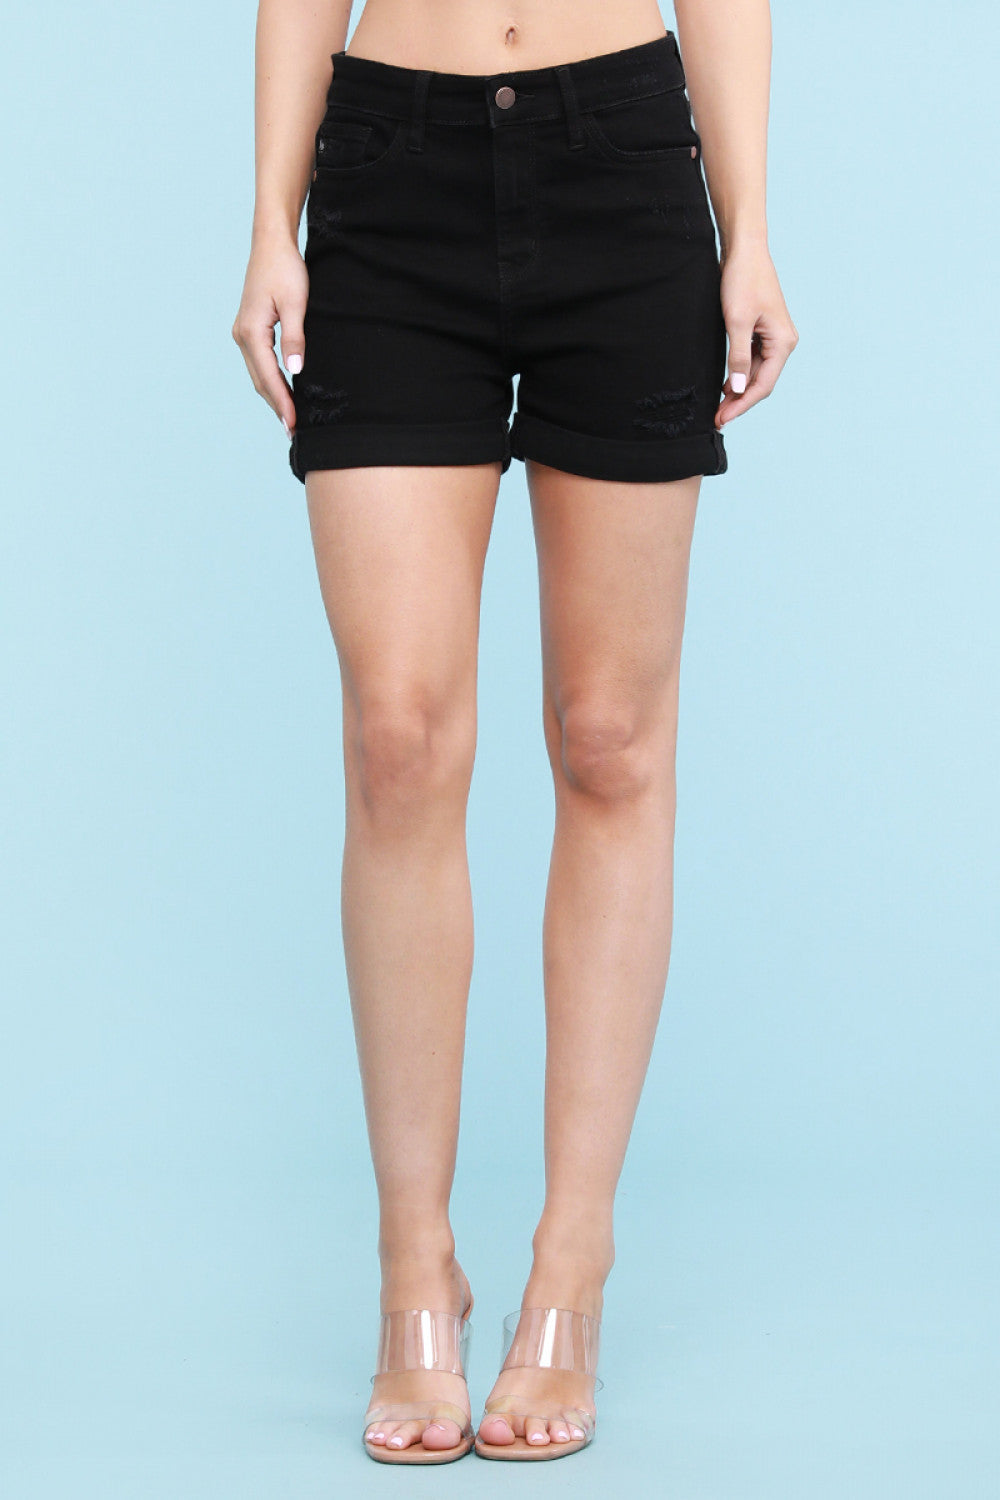 Yvonne Black Cuffed Shorts